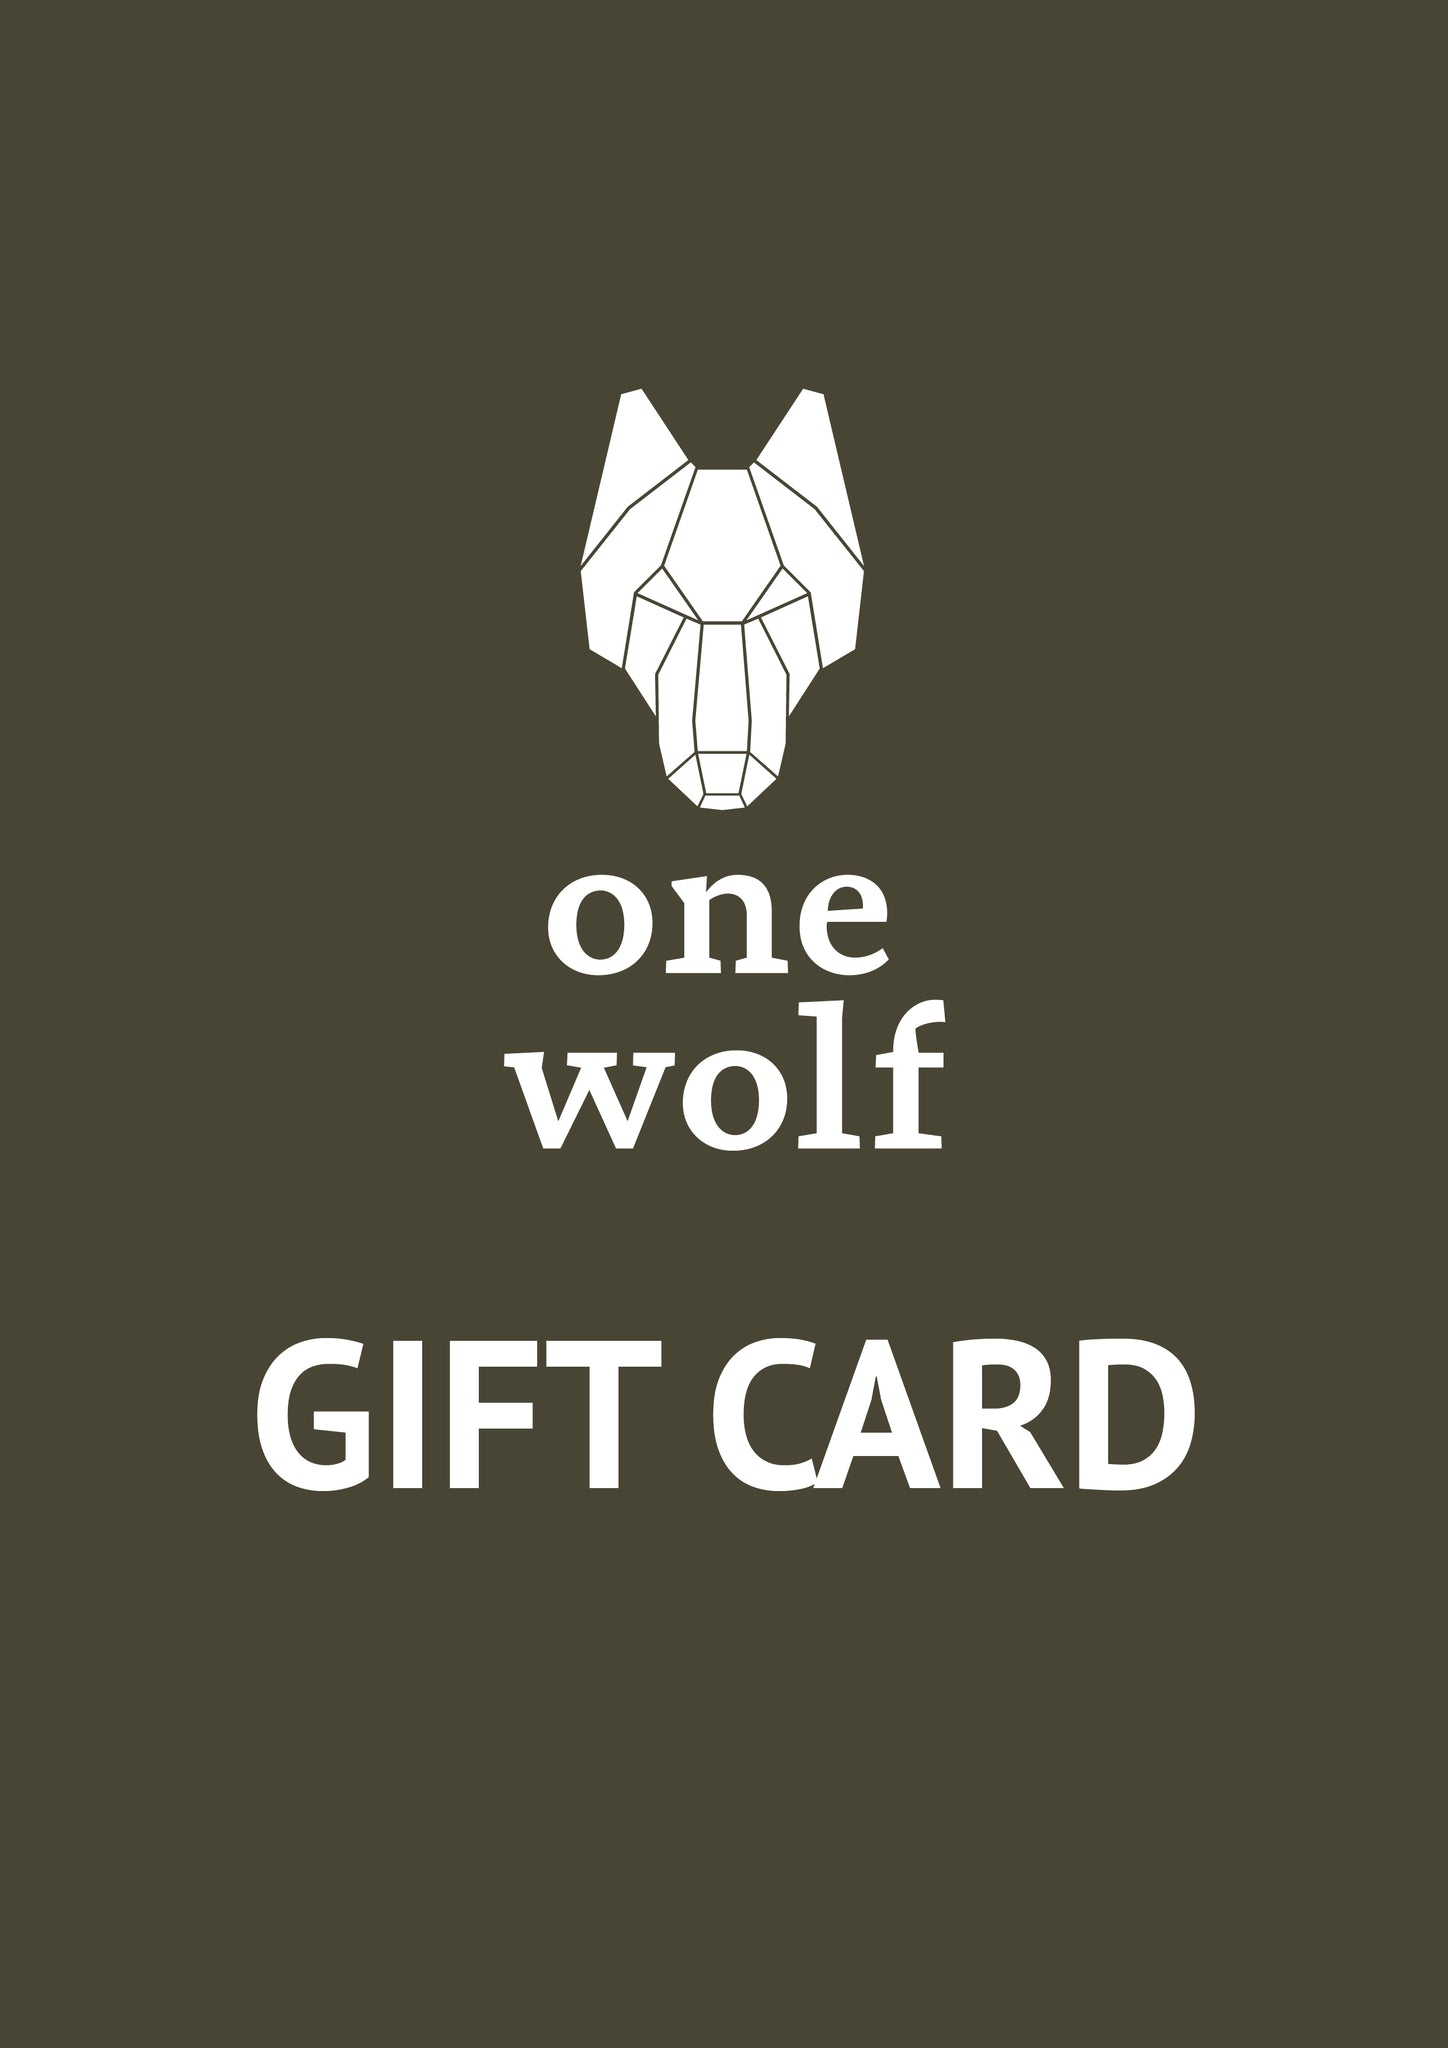 One Wolf Gift Card - One Wolf